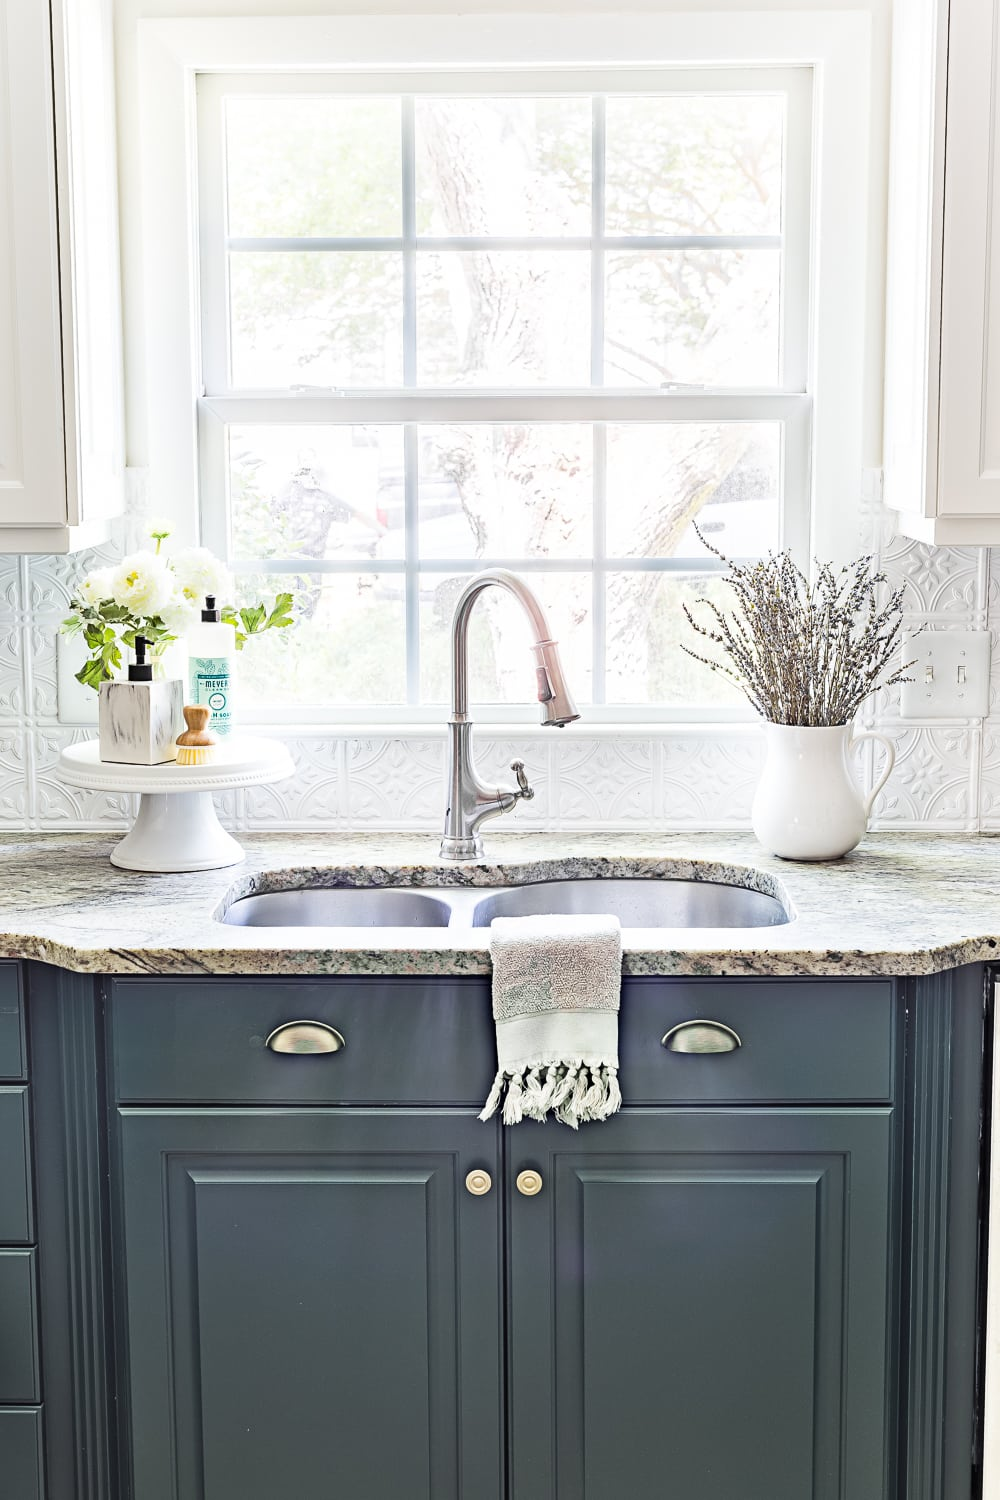 Green Kitchen Cabinet Update - Bless'er House on different color kitchen appliances, different colors for kitchens, different color kitchen islands, different color refrigerators, different color granite kitchen countertops, different color crown molding, different color bathroom,